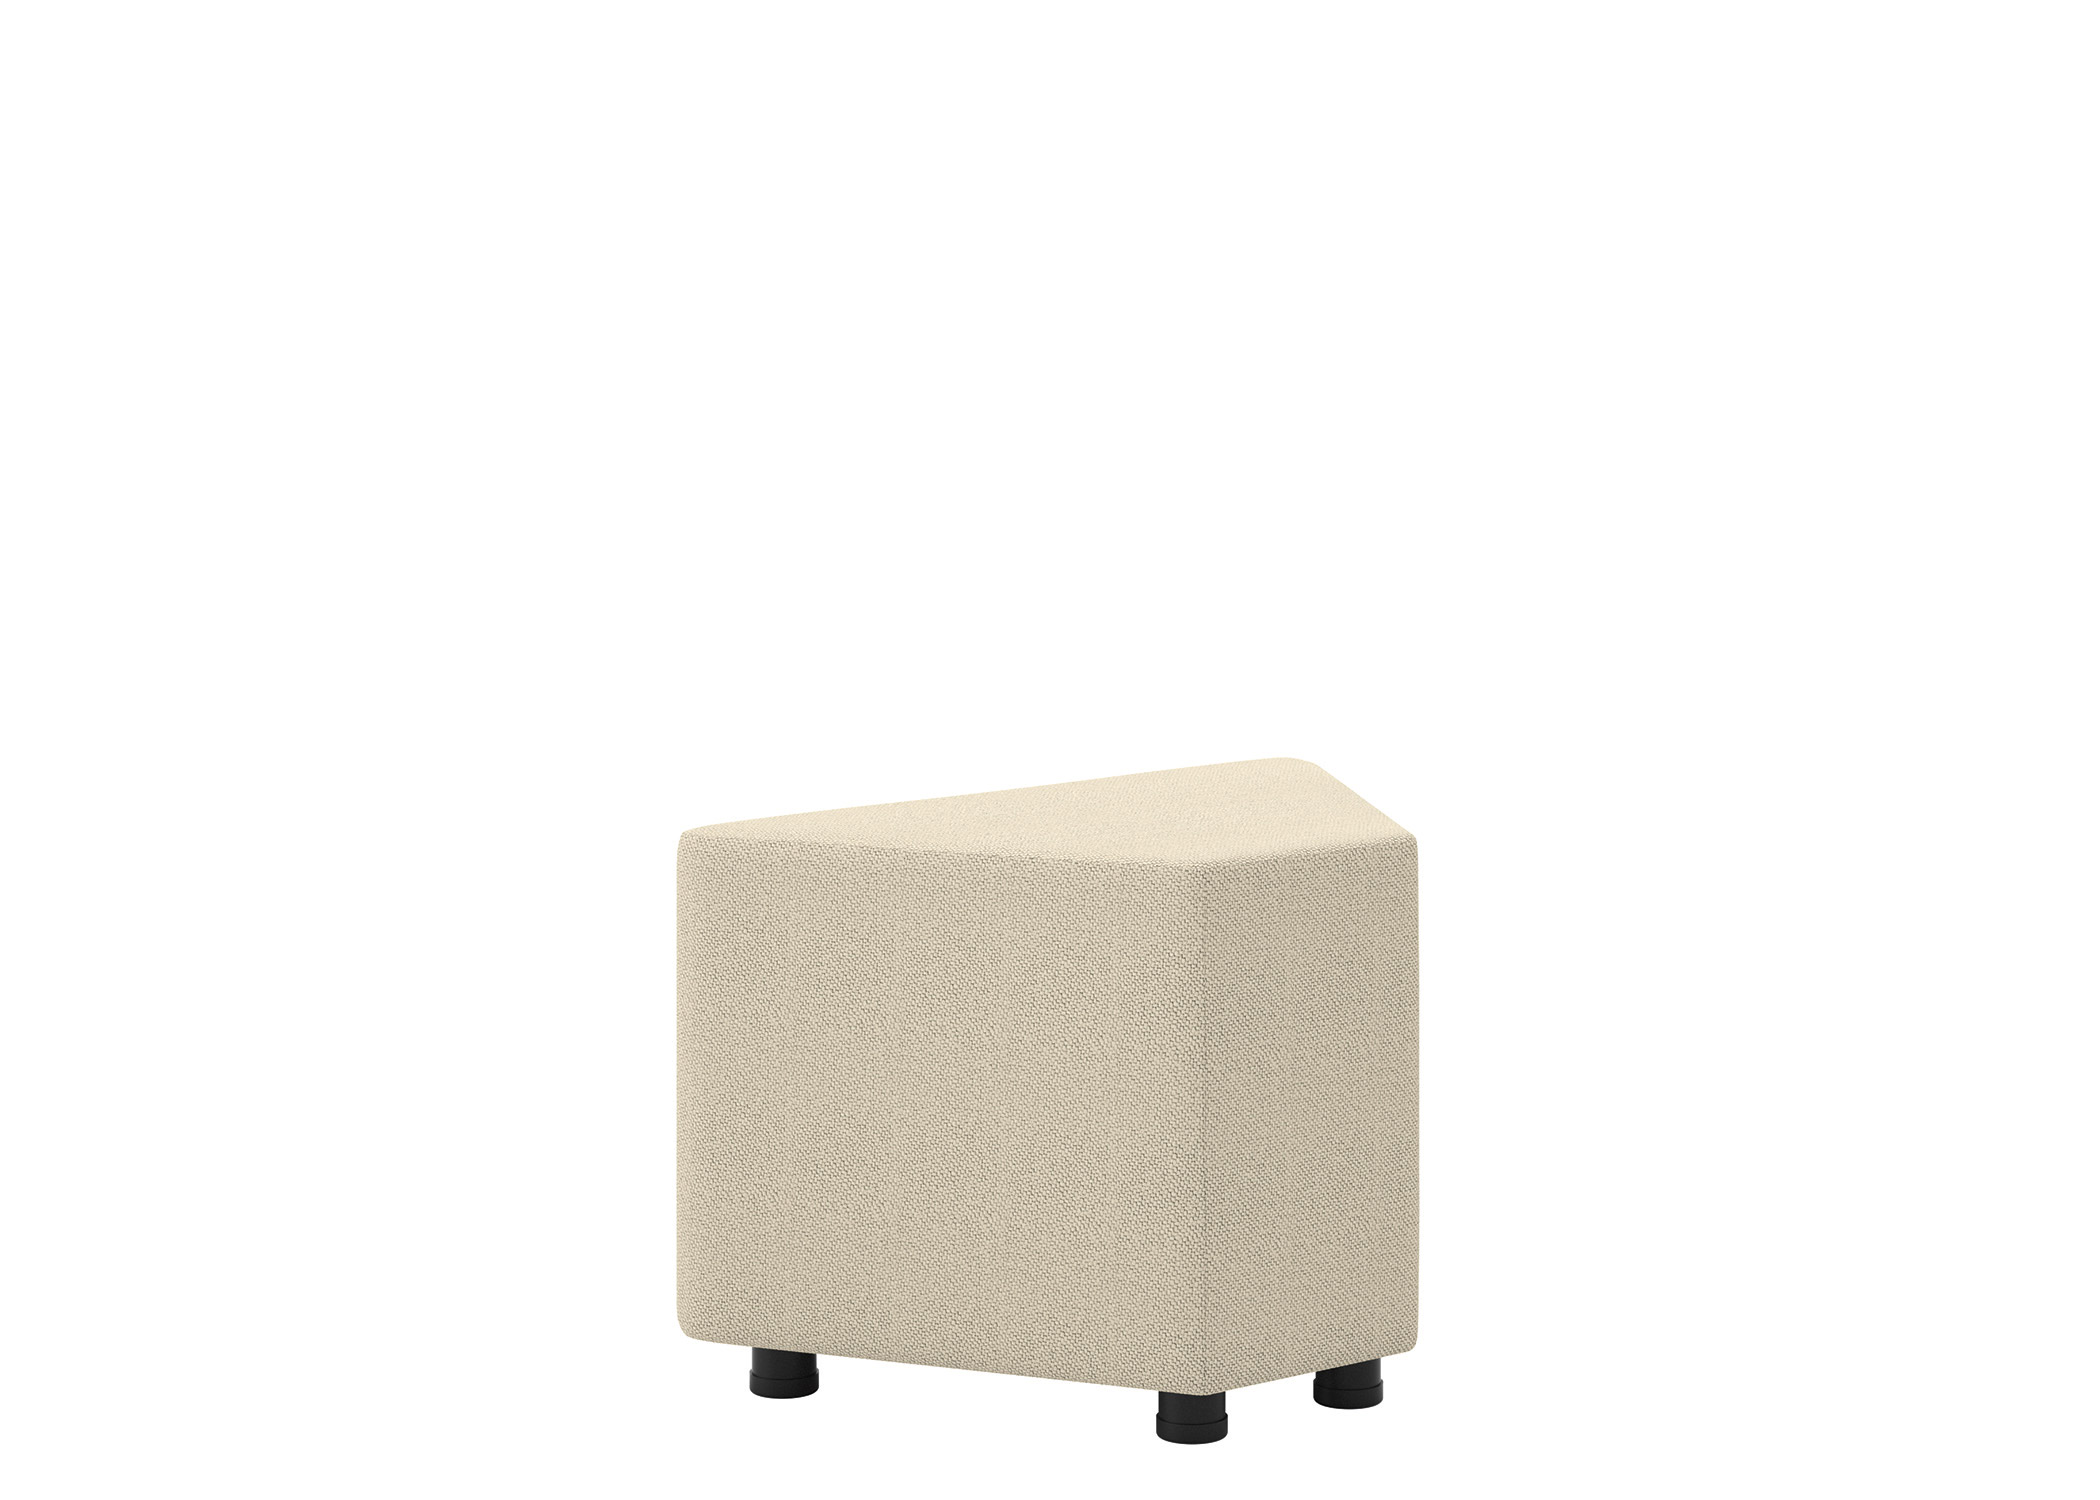 whimsy furniture. Trapezoid Static Whimsy Furniture